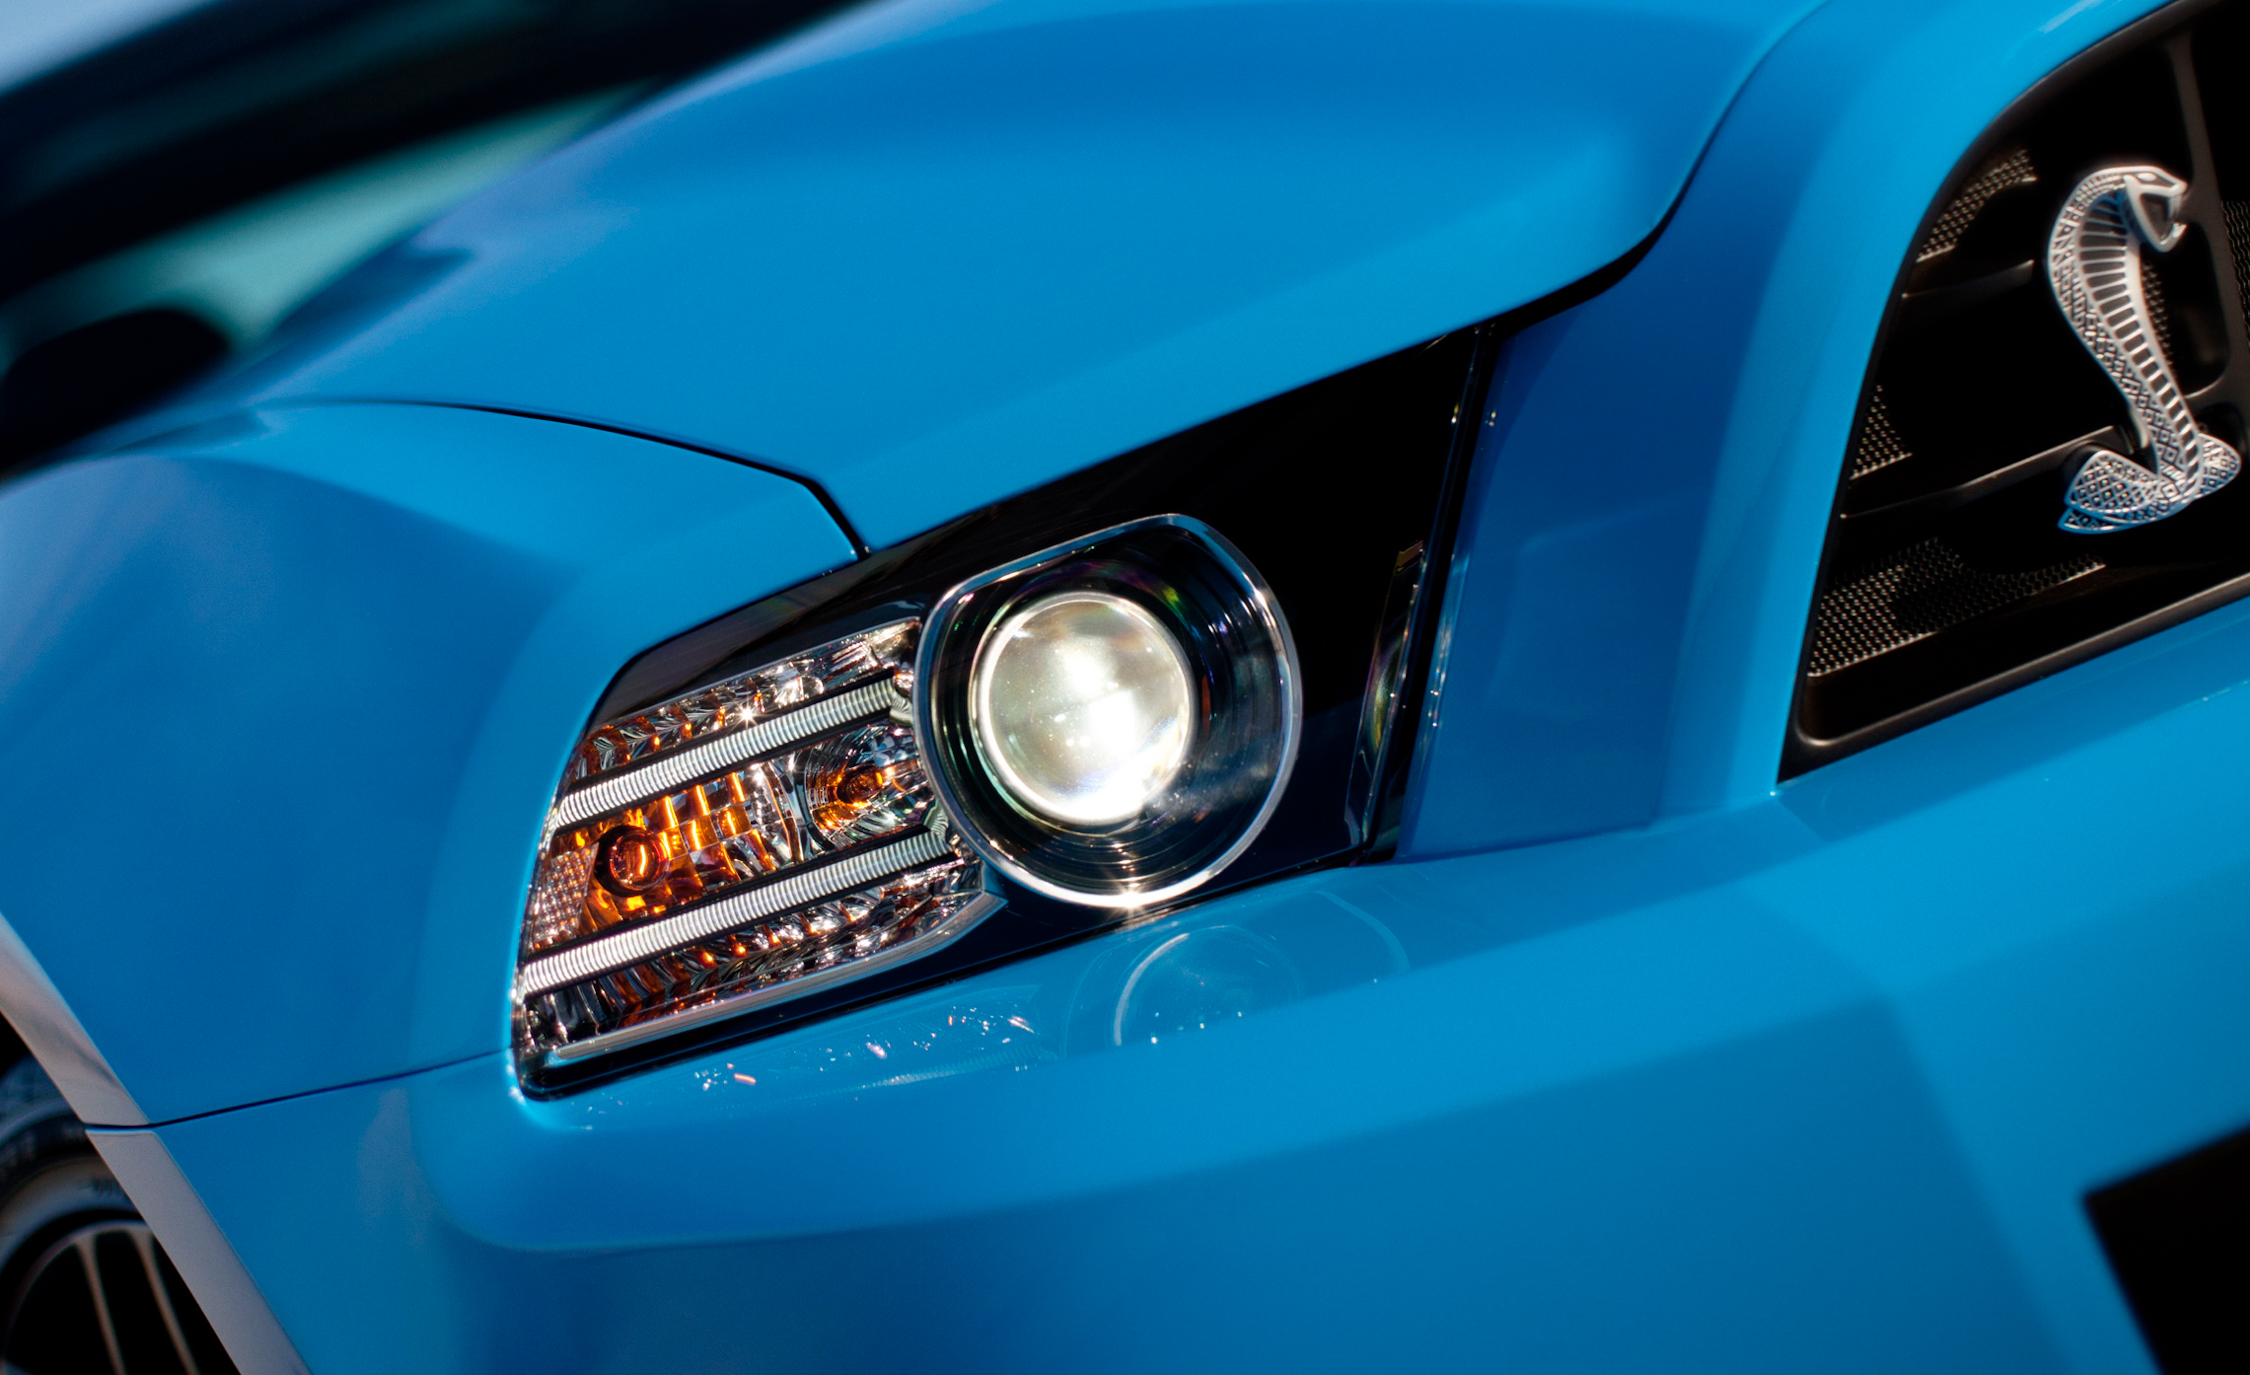 2013 Ford Mustang Shelby GT500 Blue Exterior View Headlight (View 21 of 47)